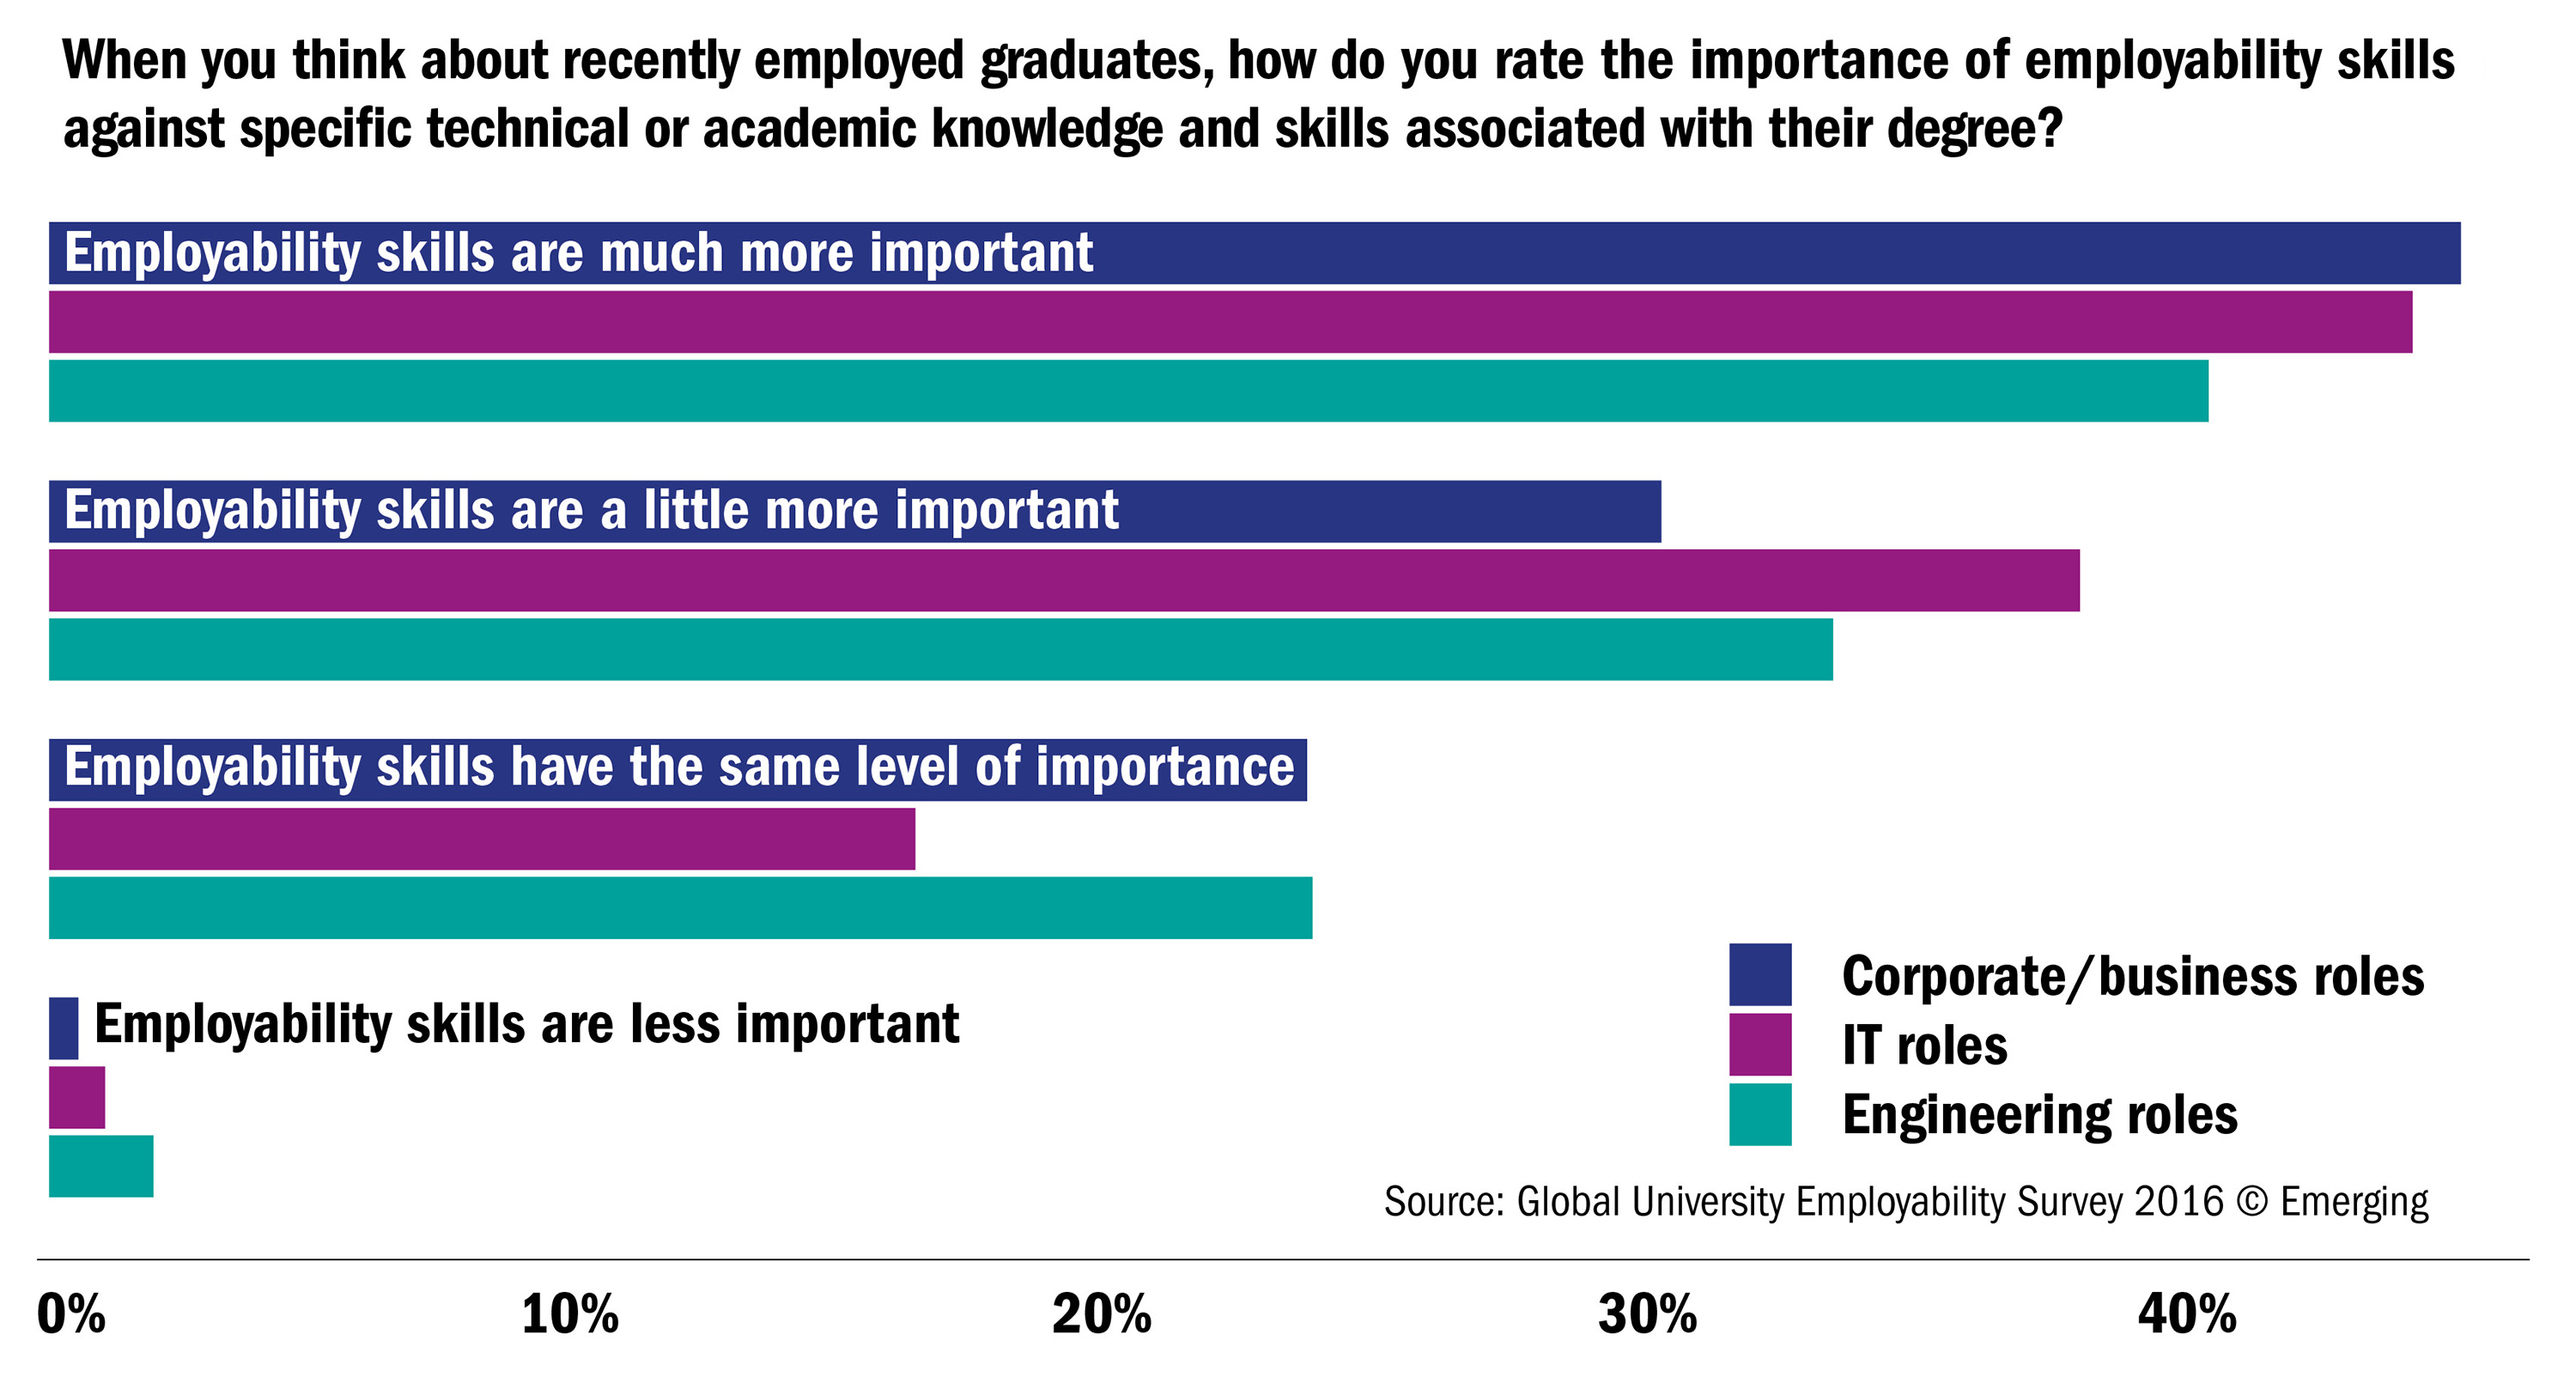 When You Think About Recently Employed Graduates, How Do You Rate The  Importance Of Employability Skills Against Specific Technical Or Academic  Knowledge